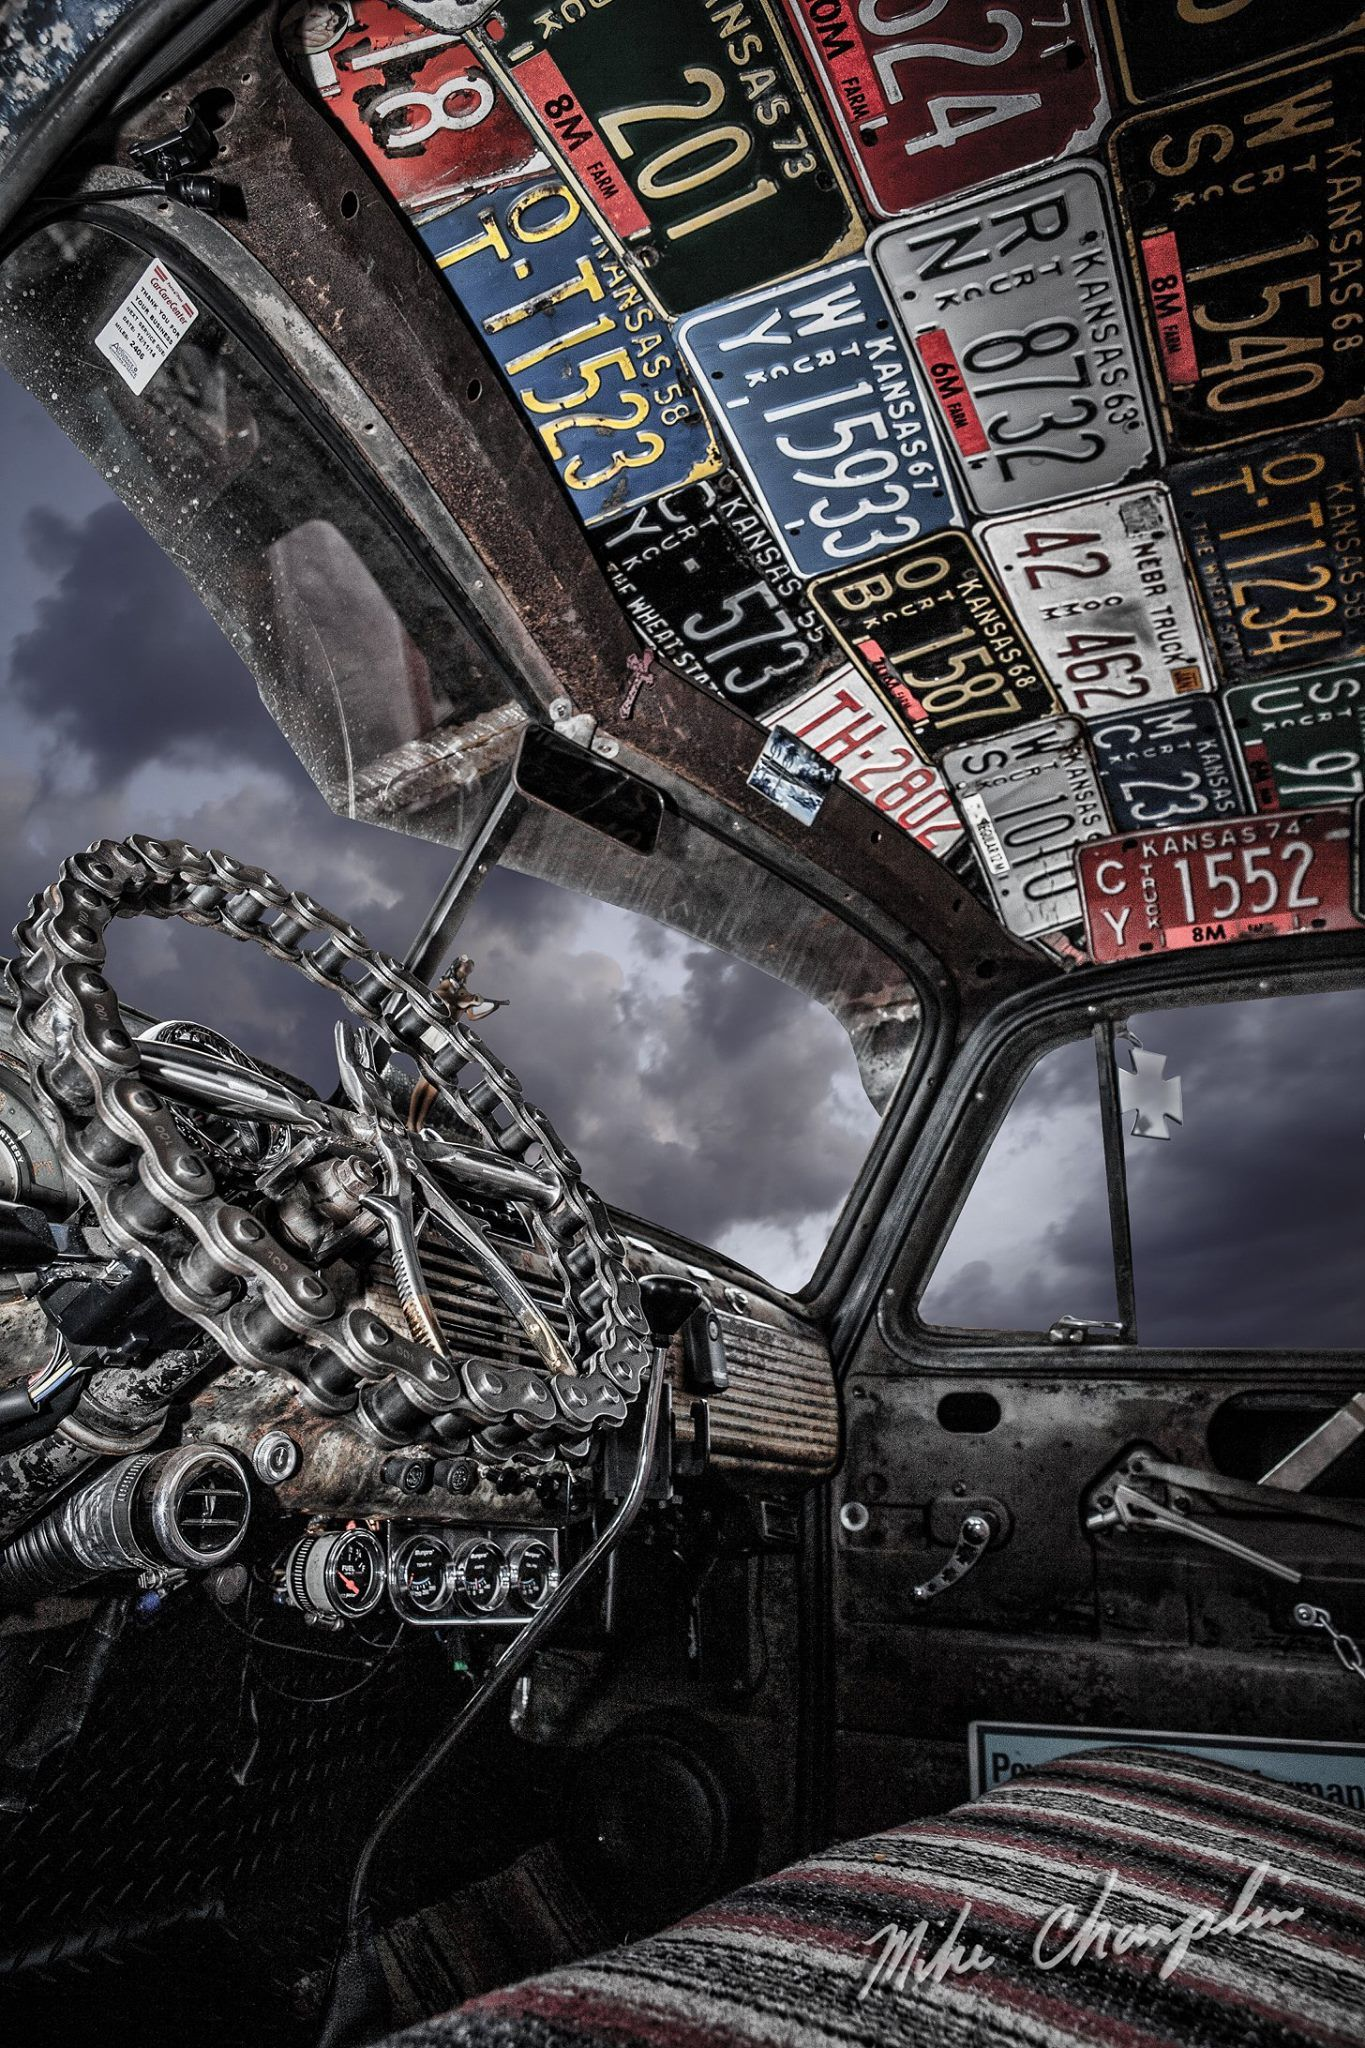 Advanced Design Chevrolet Rat Rod Interior With A Sick Custom Steering Wheel Made From Heavy